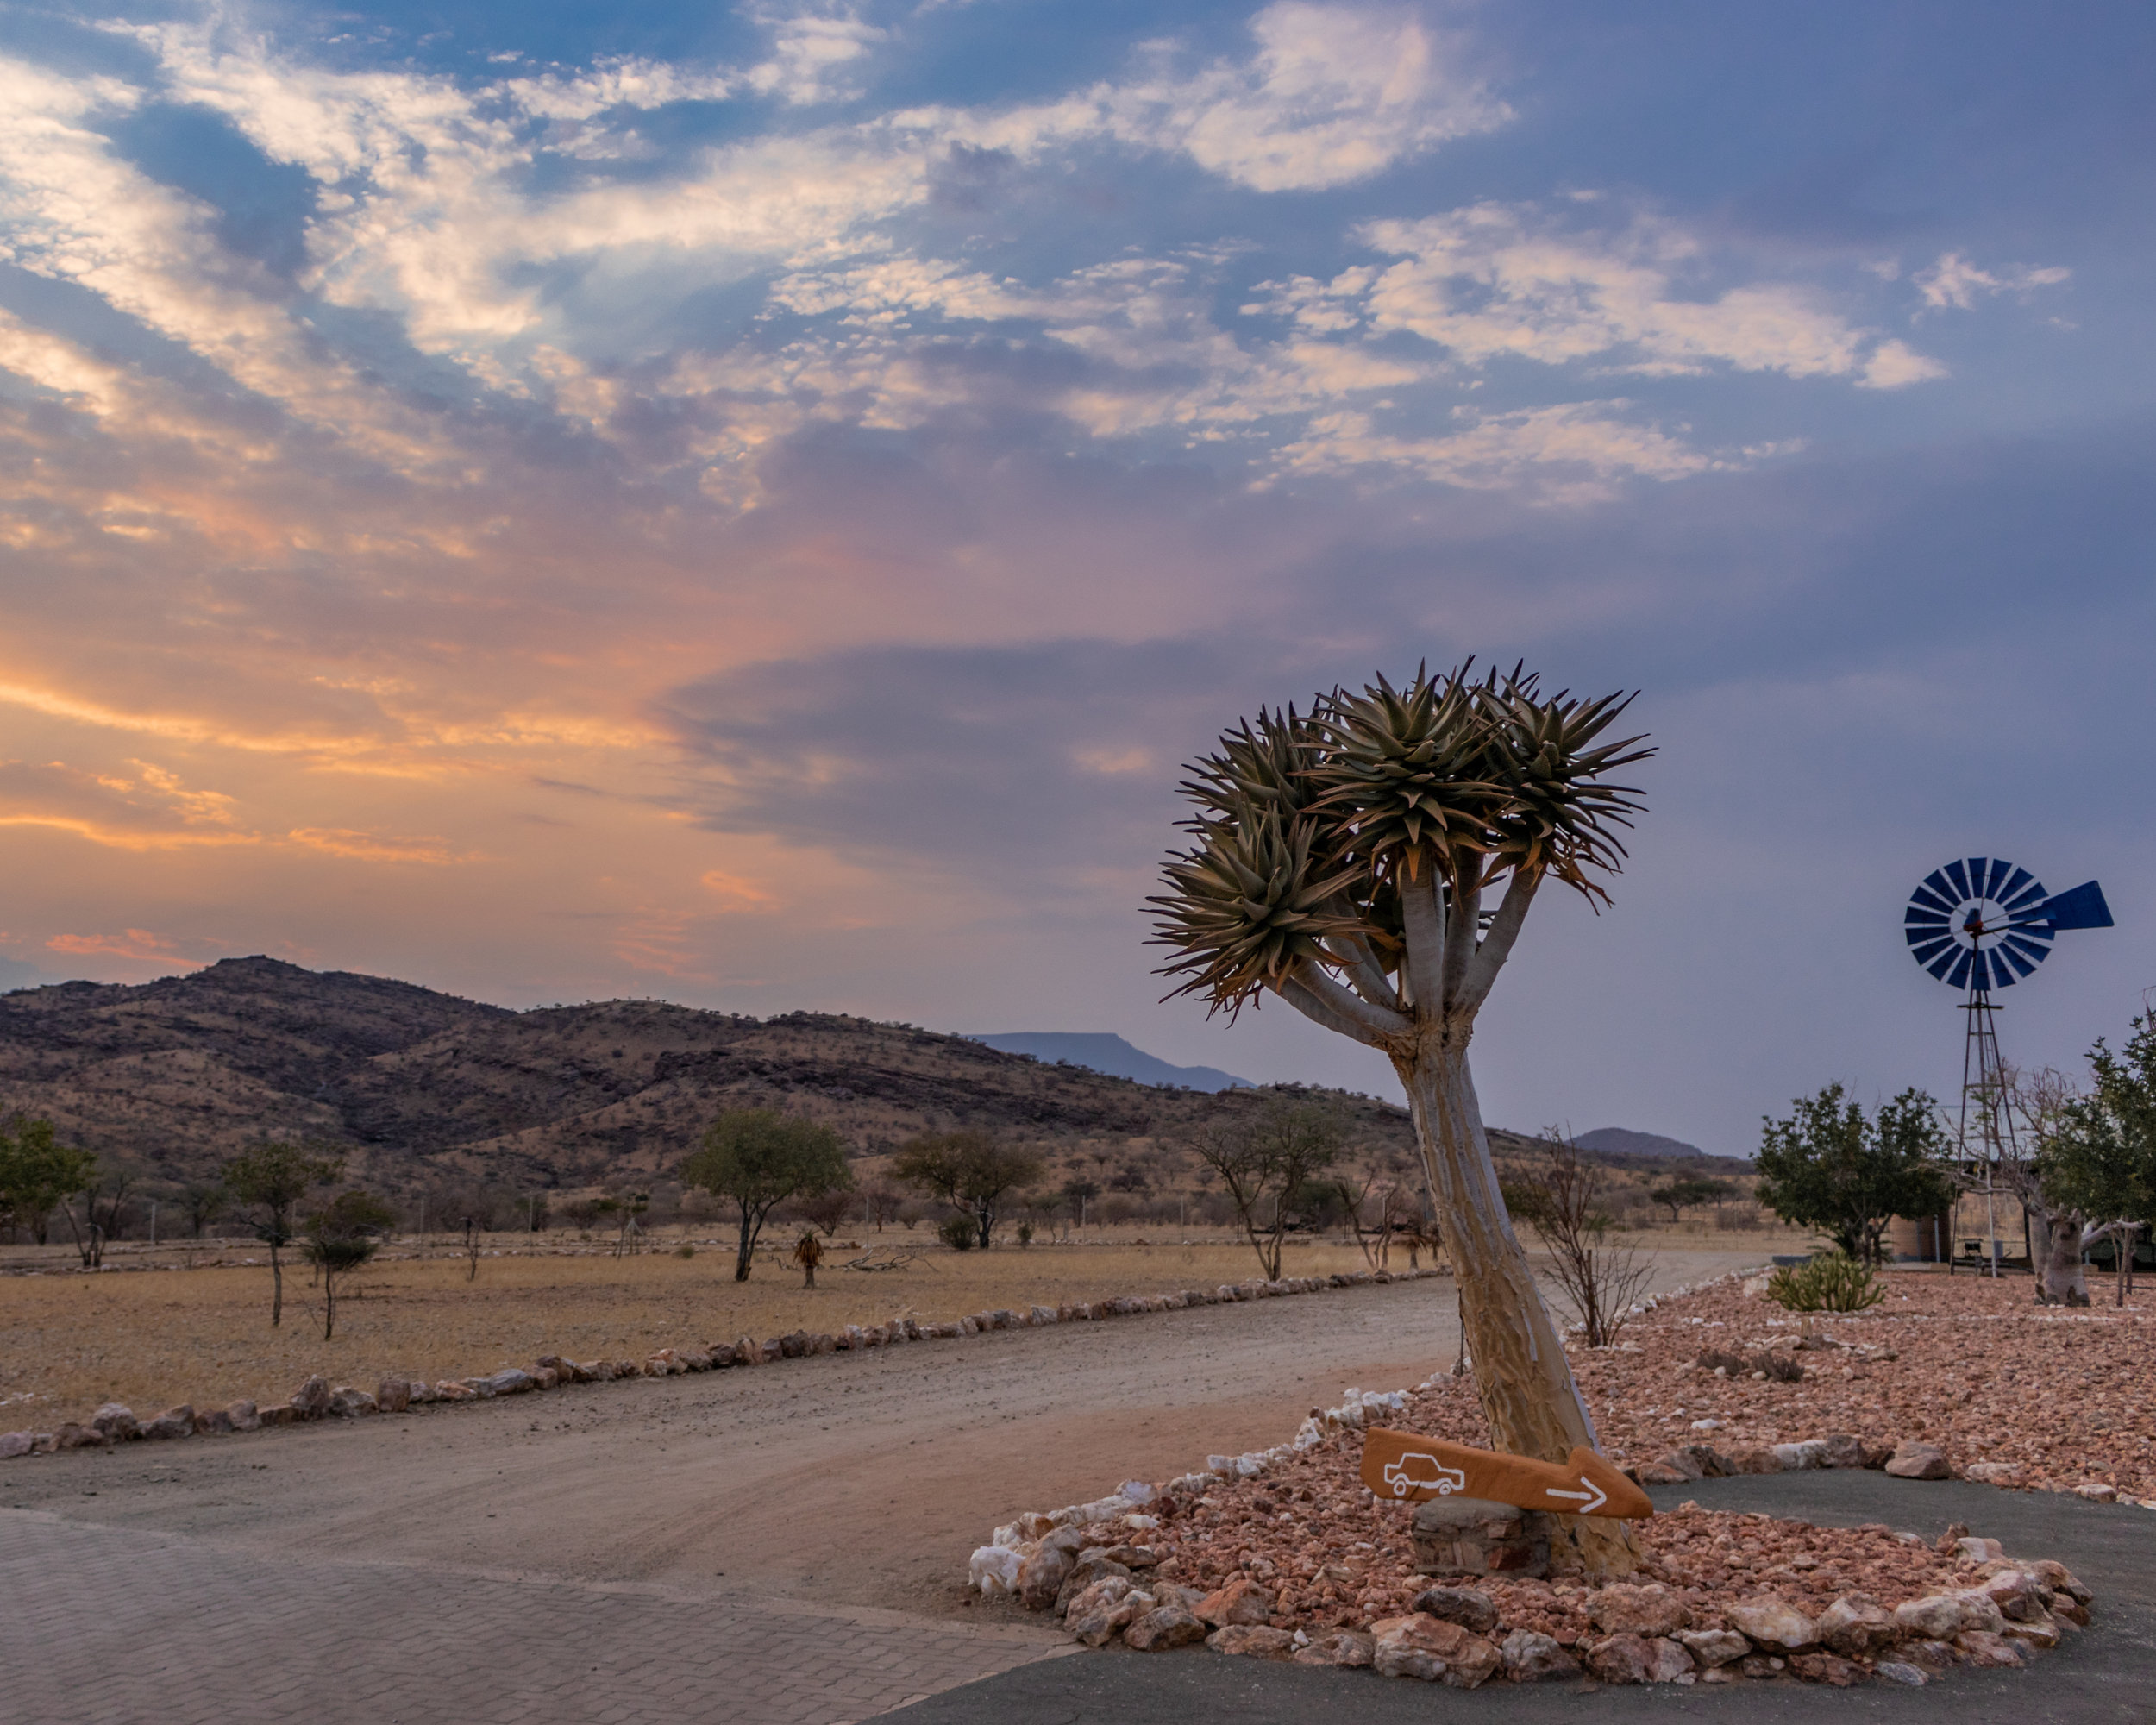 Namibia Cycle Tour - Bike and Saddle - Rooisand to Solitaire - Day3 - photo by Ken Treloar Photography-2.jpg